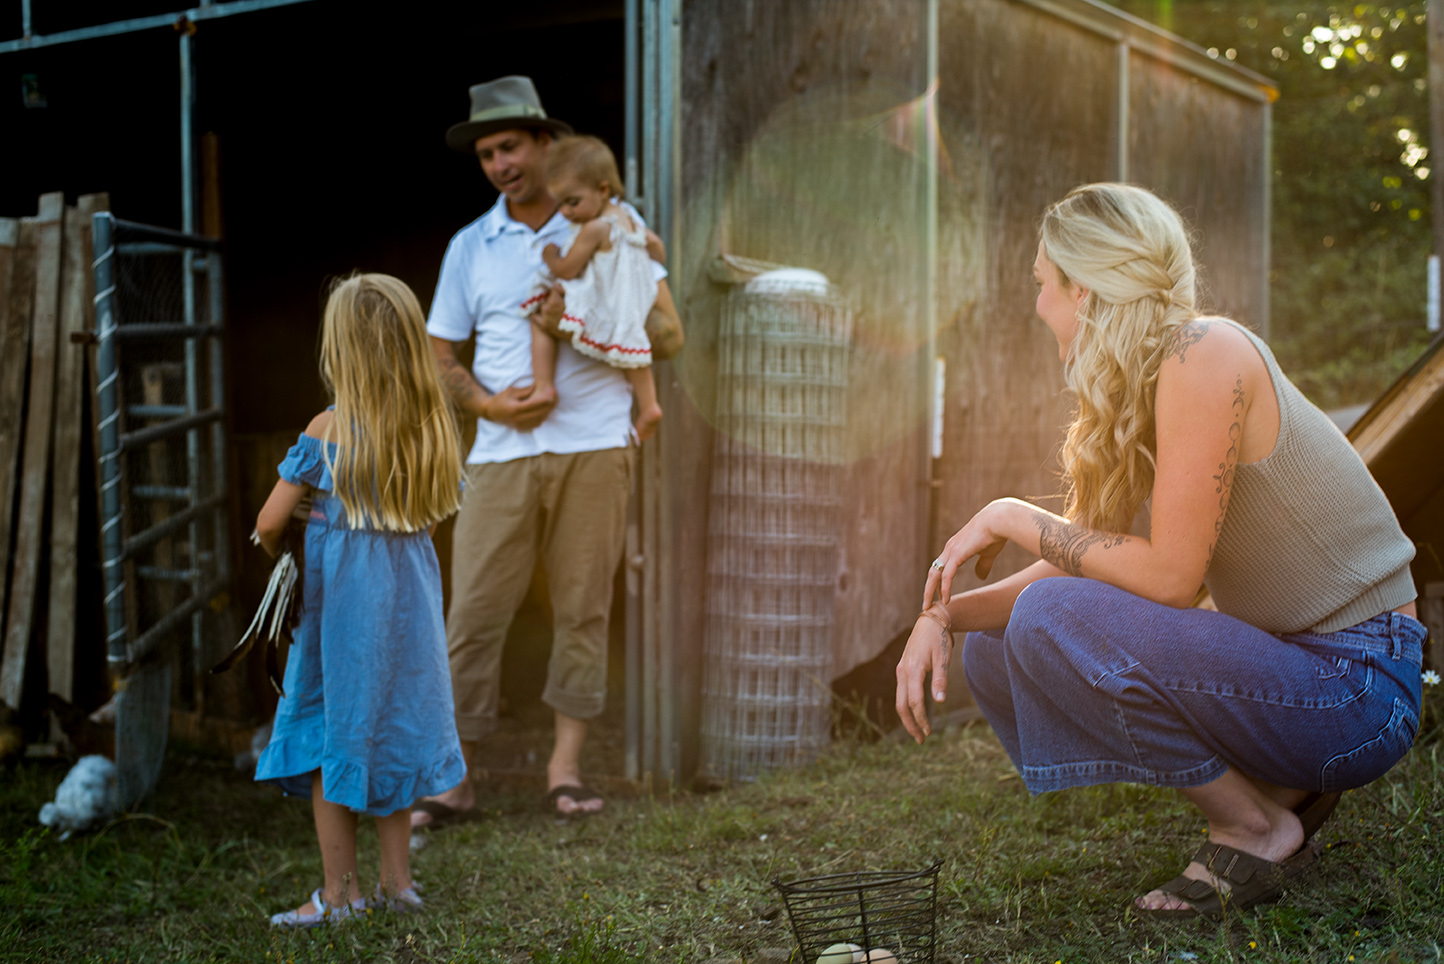 Family laughing in Kalama, Washington, at their home farm, photographed by Vancouver photographer Lillian Short.